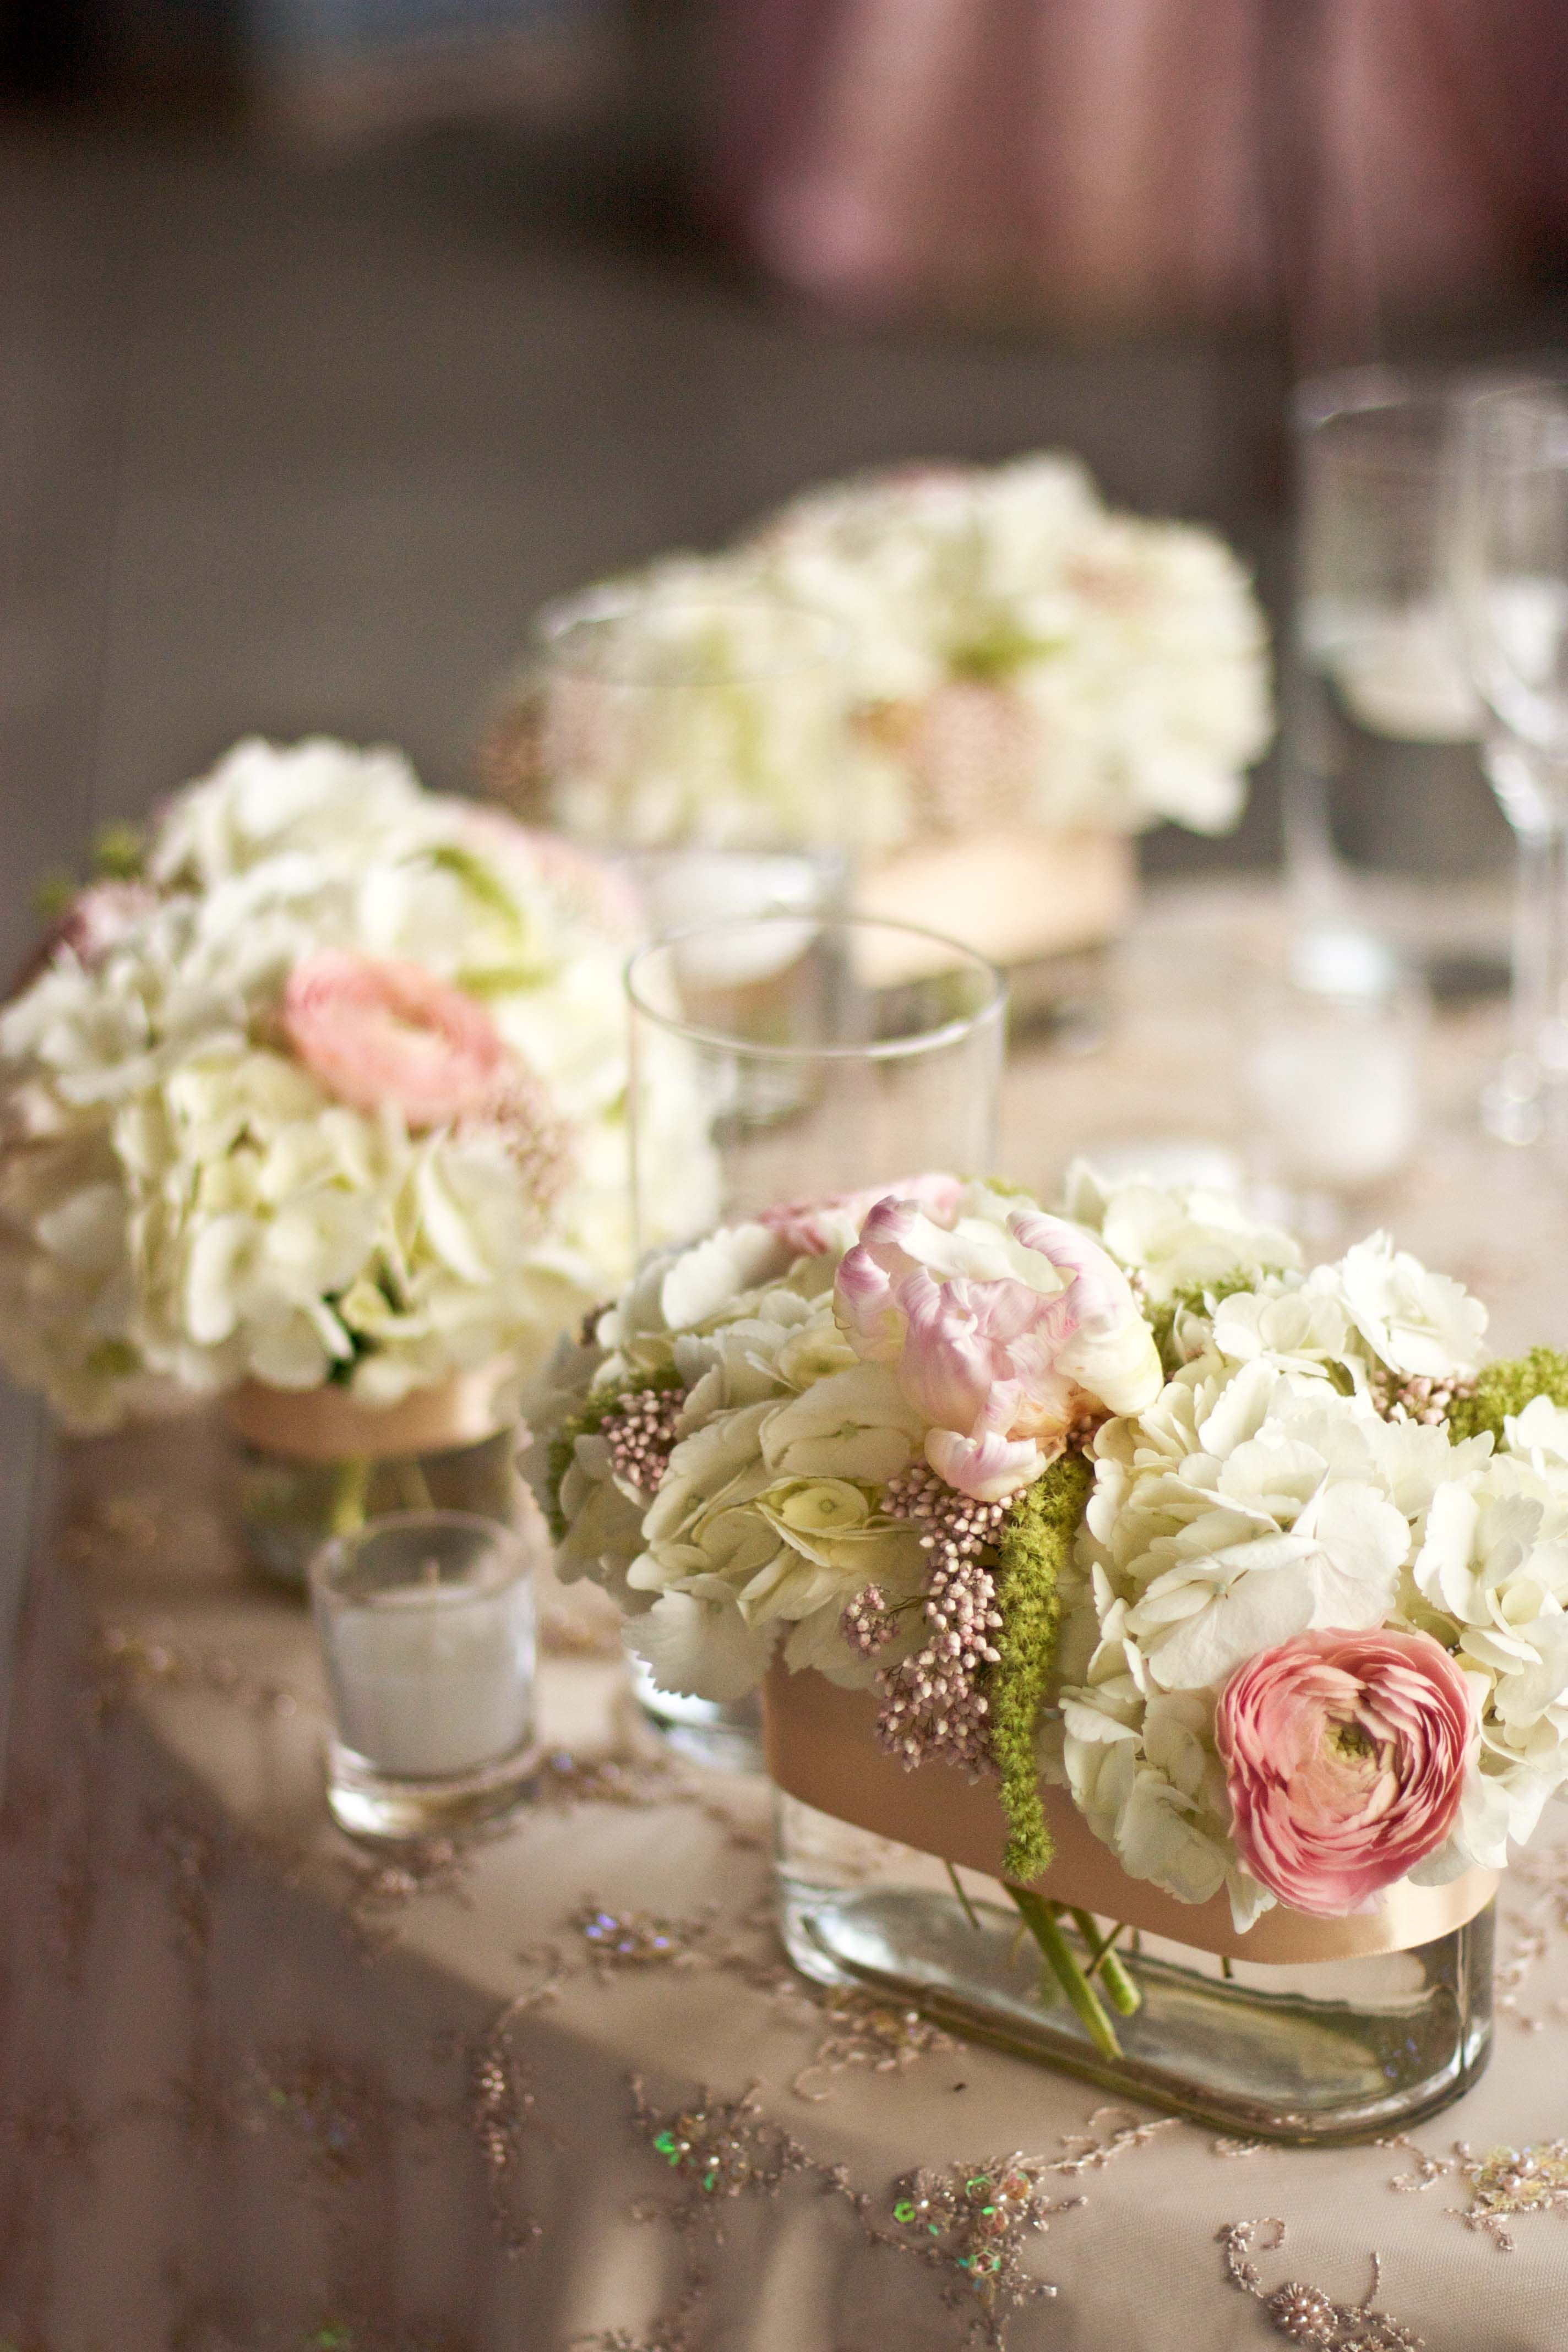 image detail for sacramento wedding florist sacramento 39 s premier wedding flowers. Black Bedroom Furniture Sets. Home Design Ideas